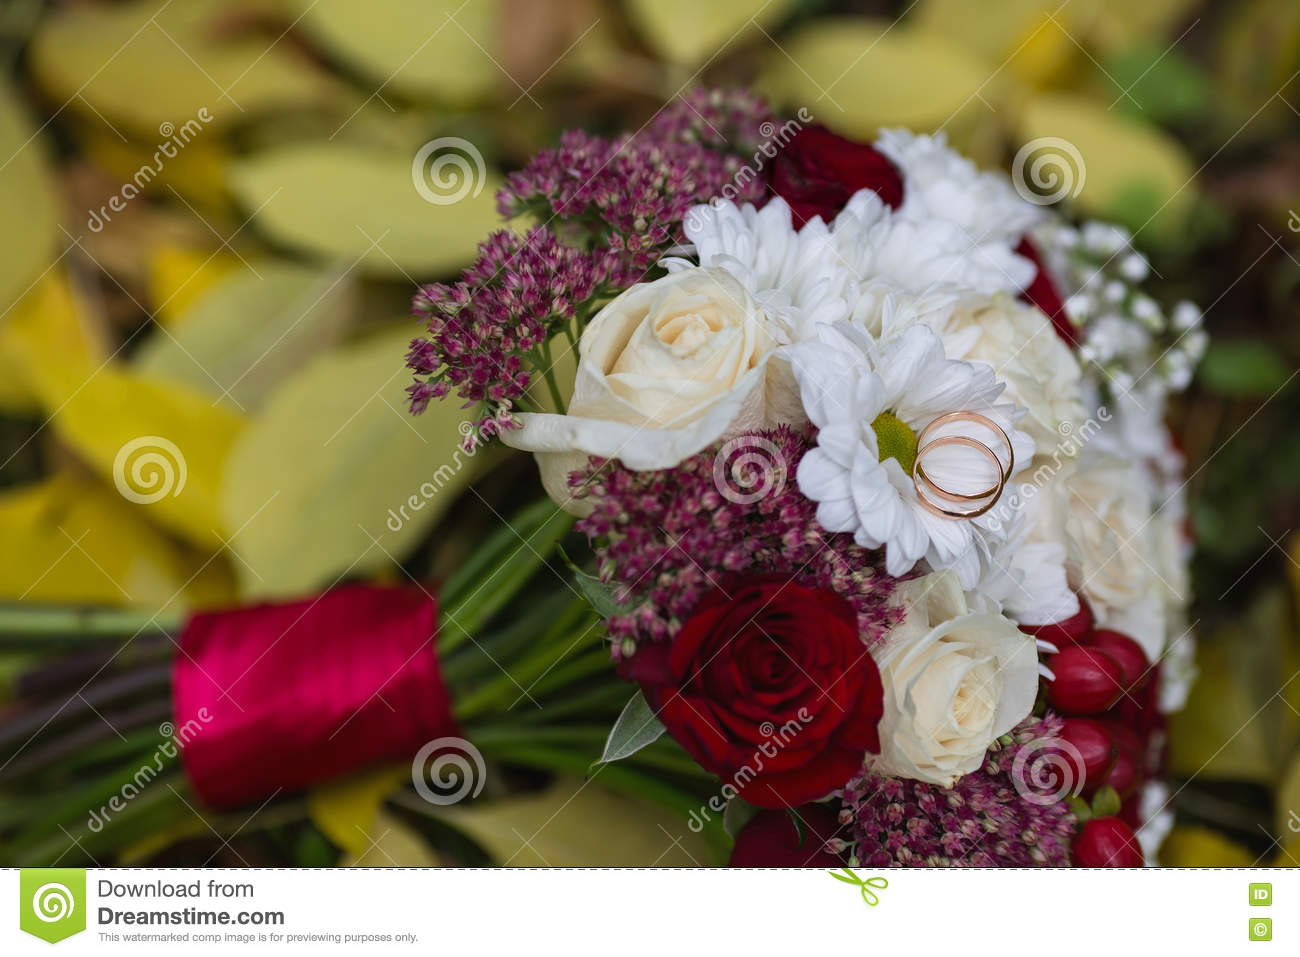 Wedding Flowers Wedding Rings Lie On A Wedding Bouquet Bouquet Of